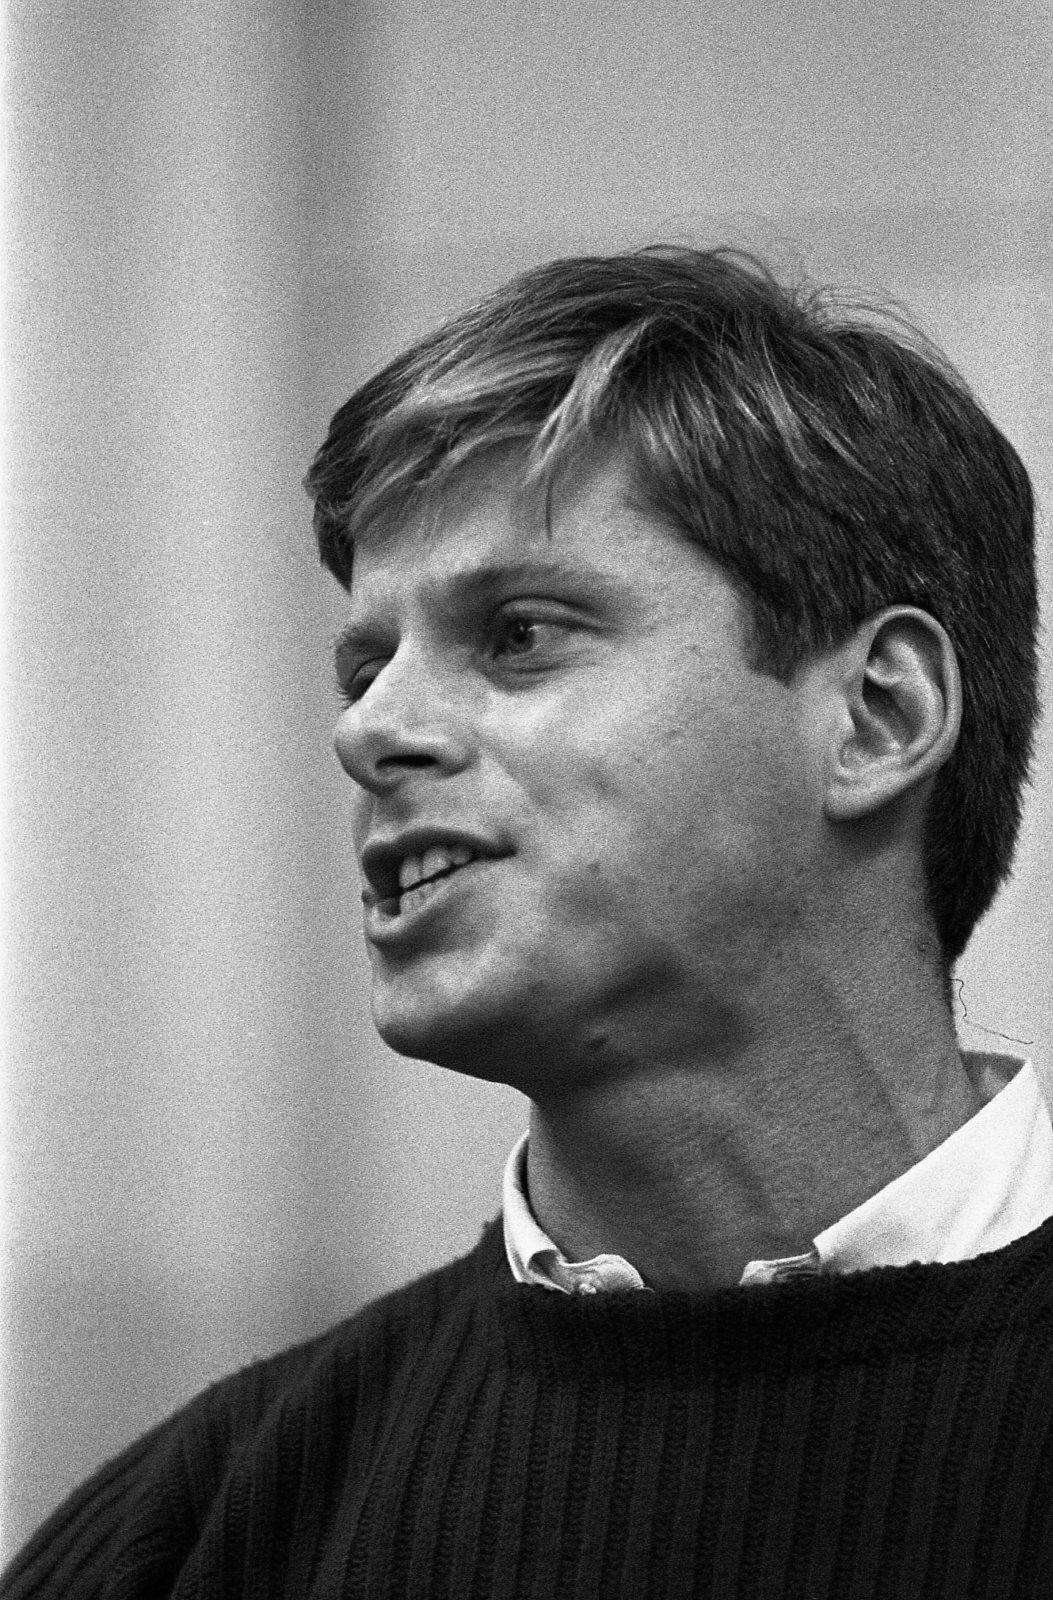 A Wonderful Song By Robert Morse As A Young Performer